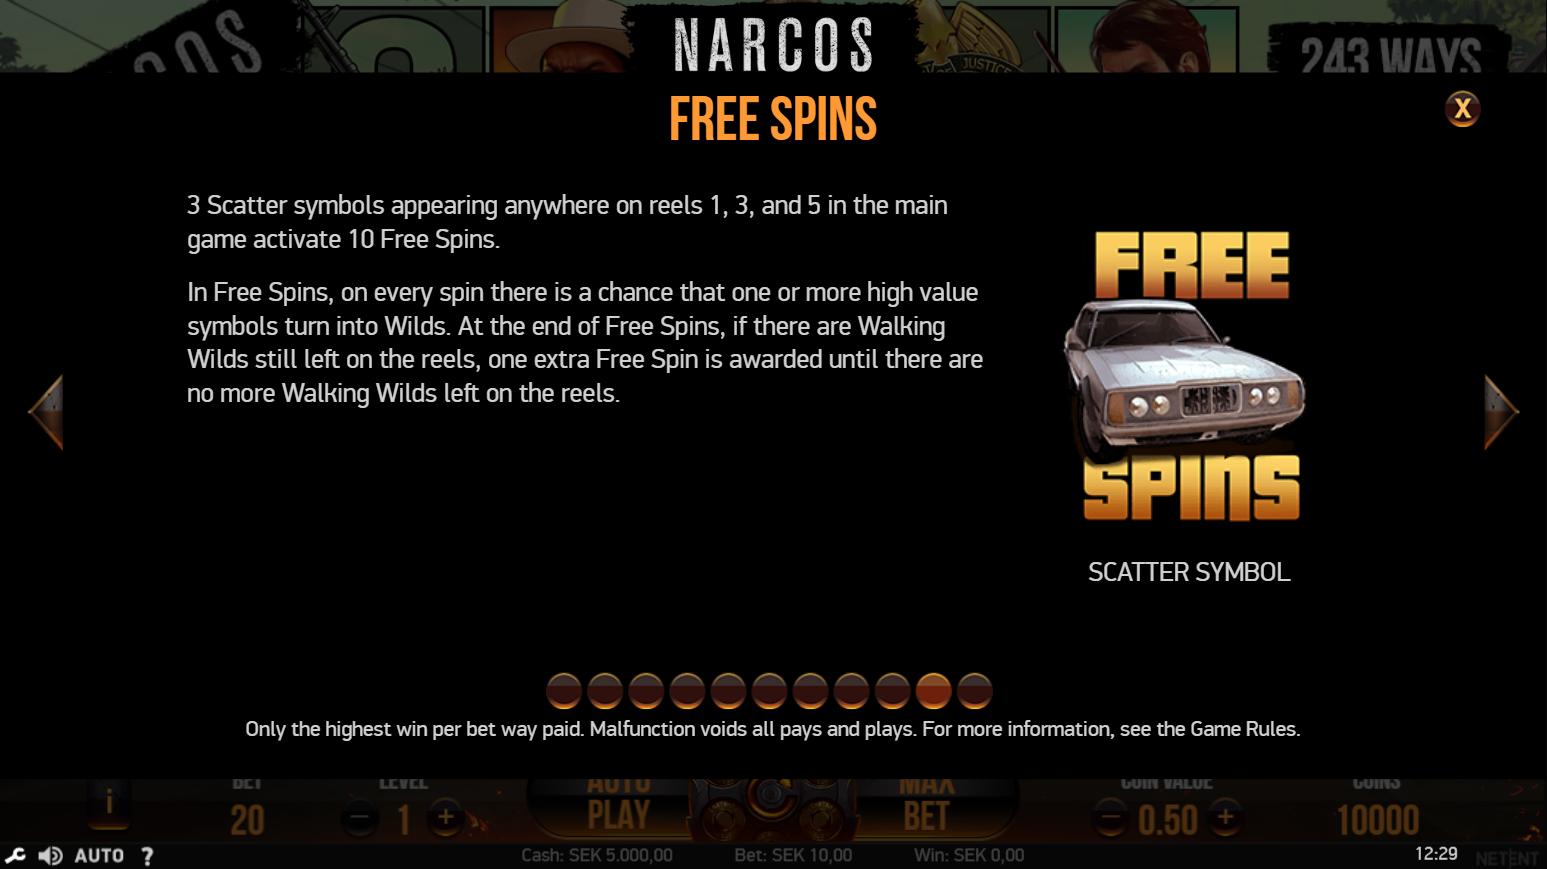 narcos-free-spins